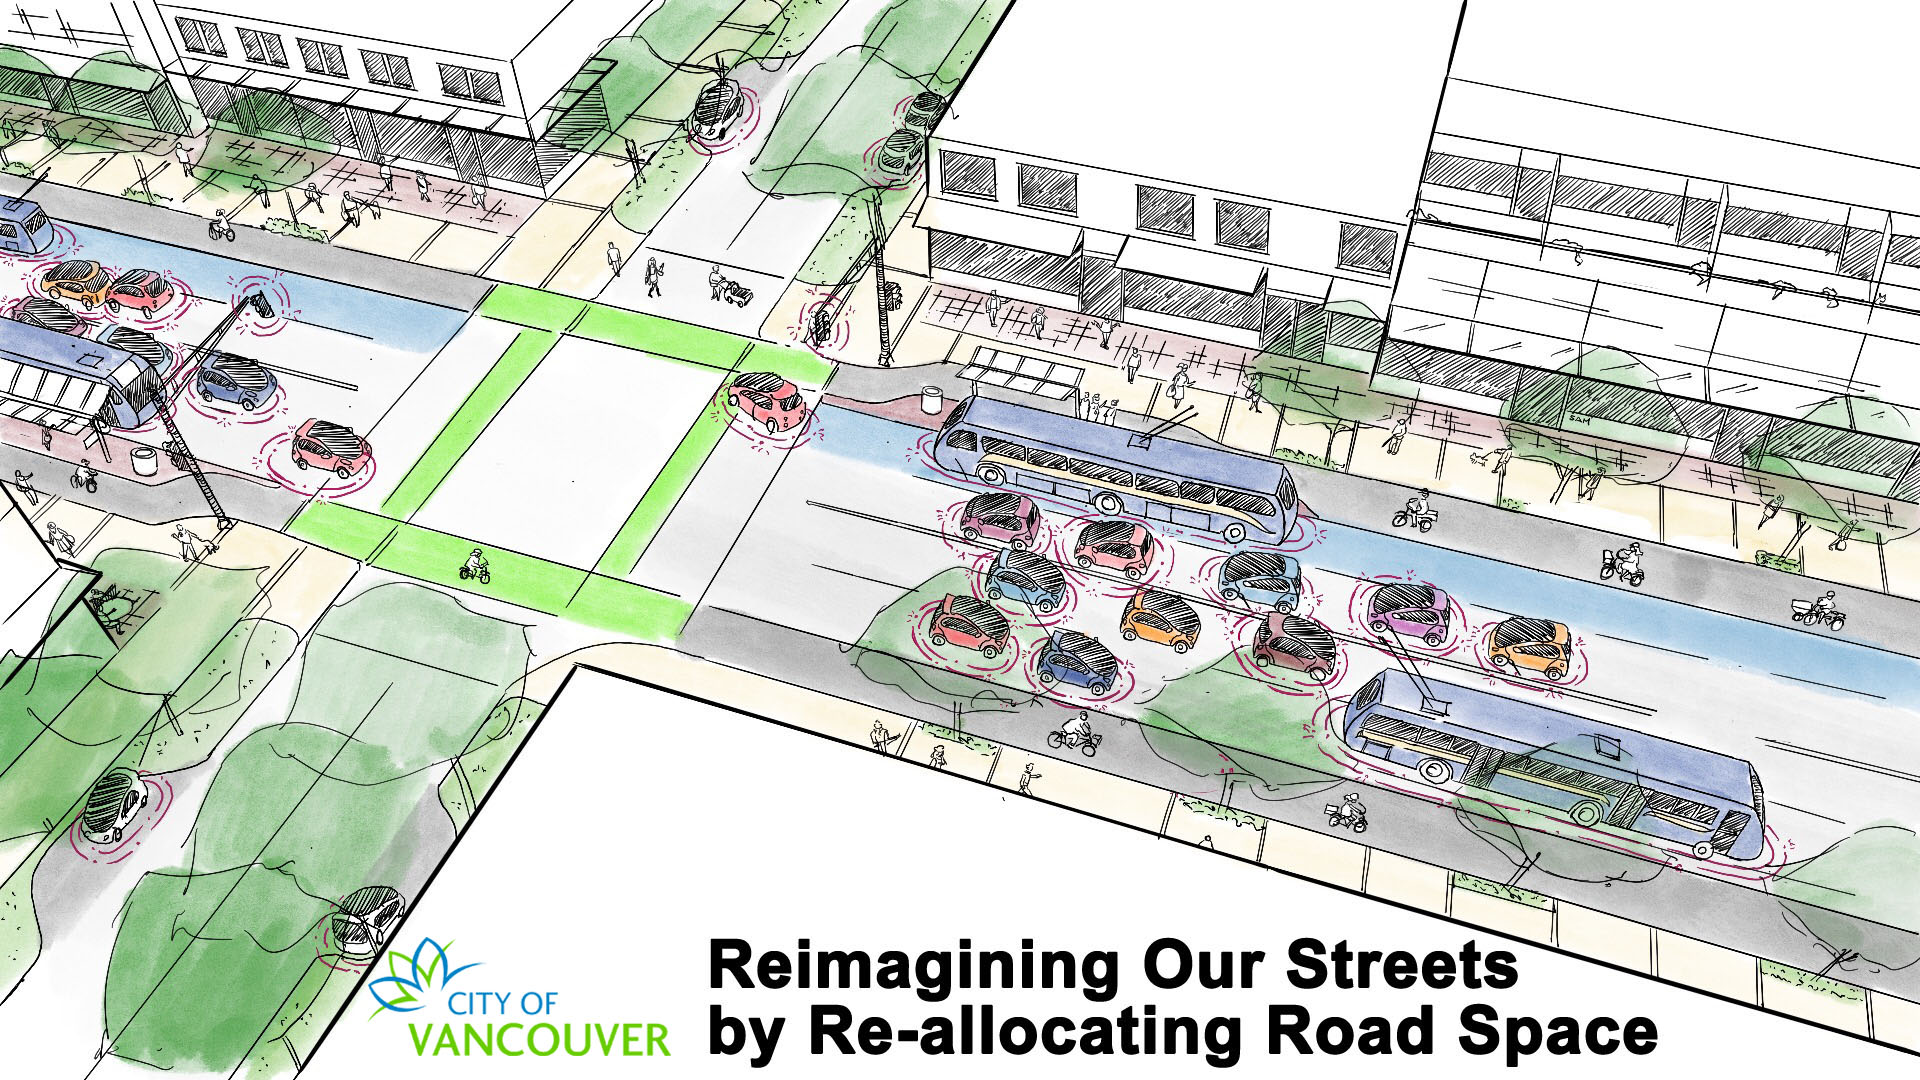 Image: Sam Khany / City of Vancouver, Transportation Planning